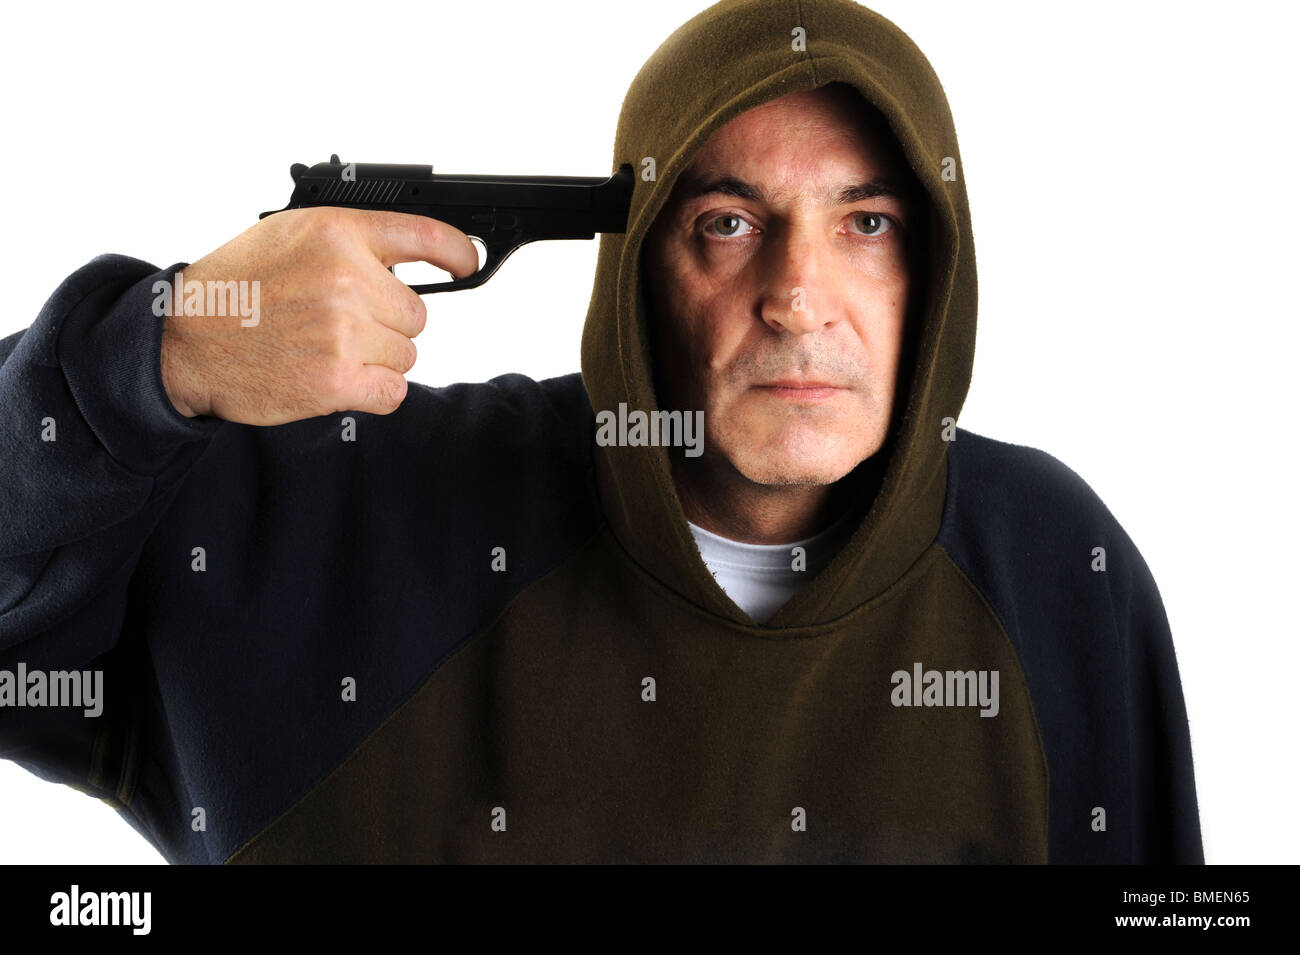 A man wearing a hood aiming a gun with white background - Stock Image